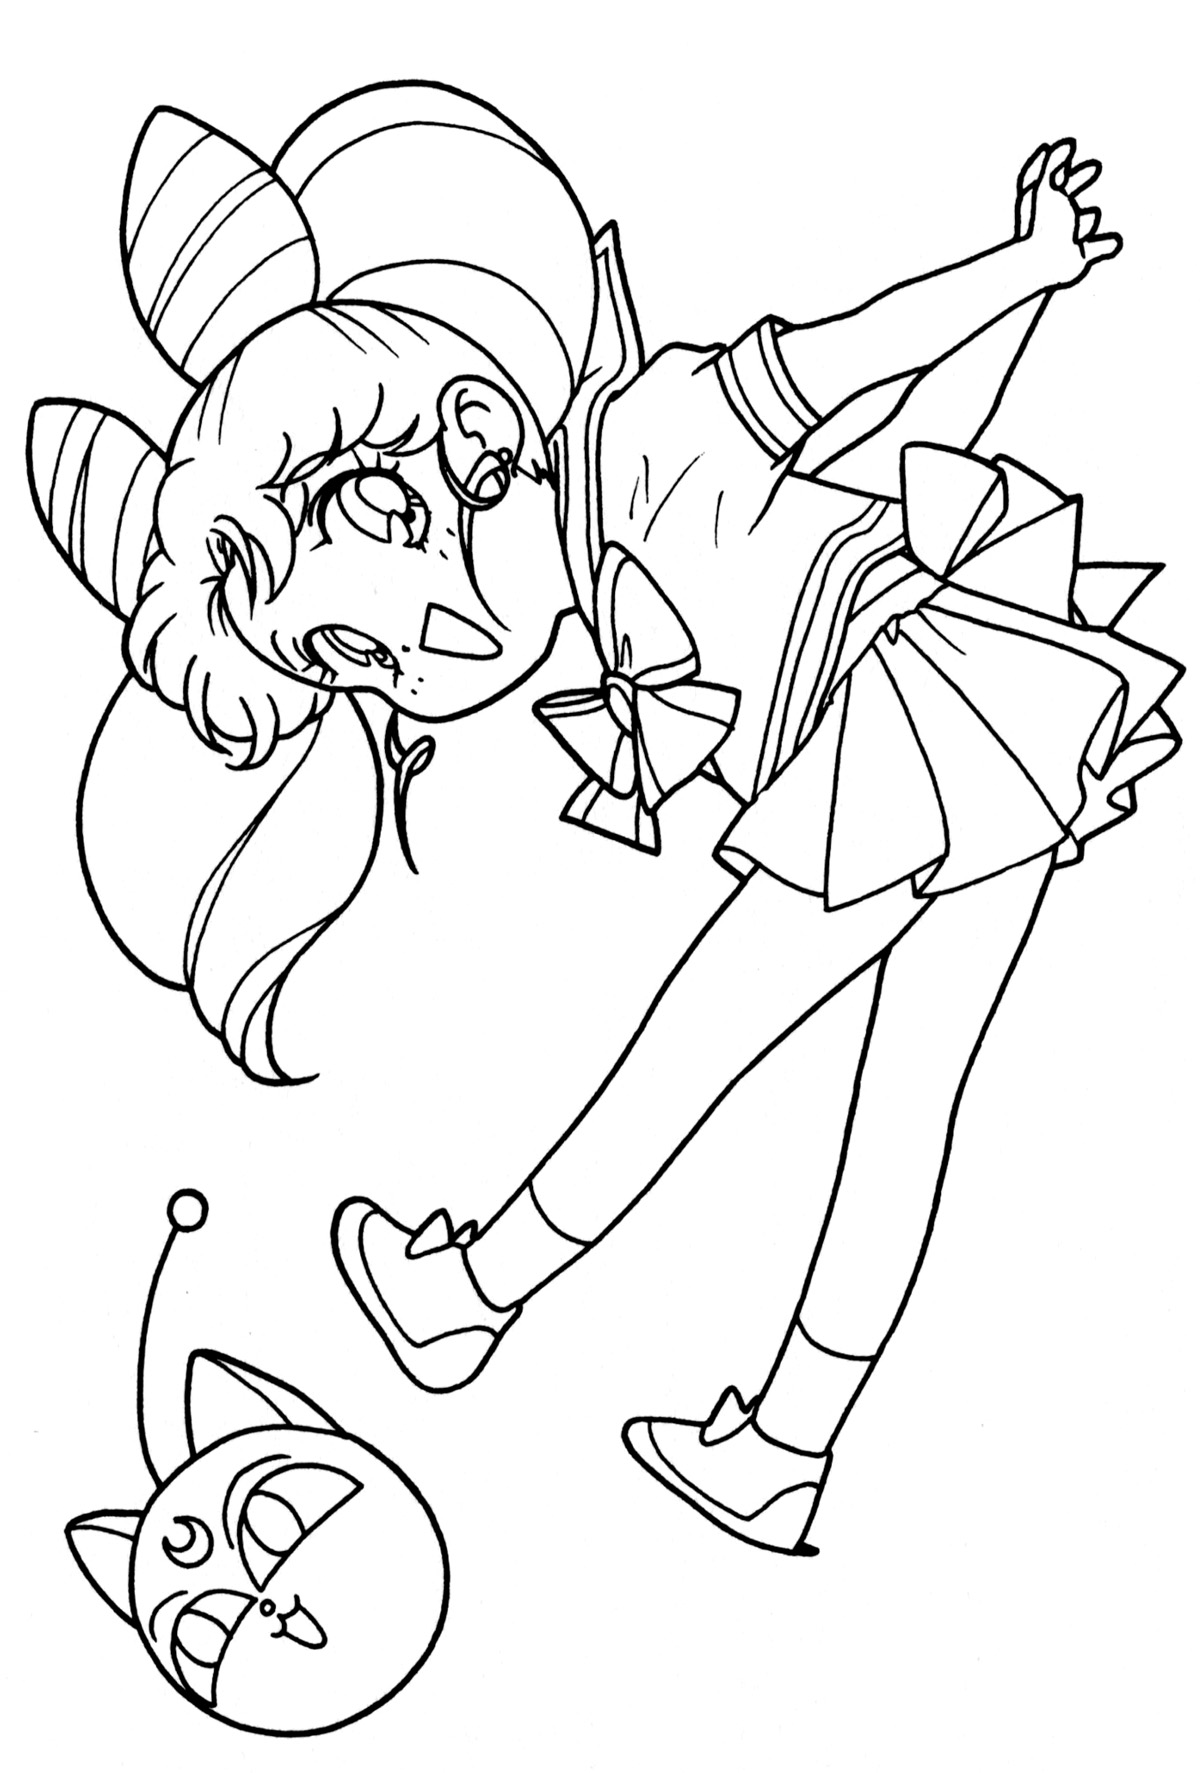 chibi moon coloring pages - photo#4